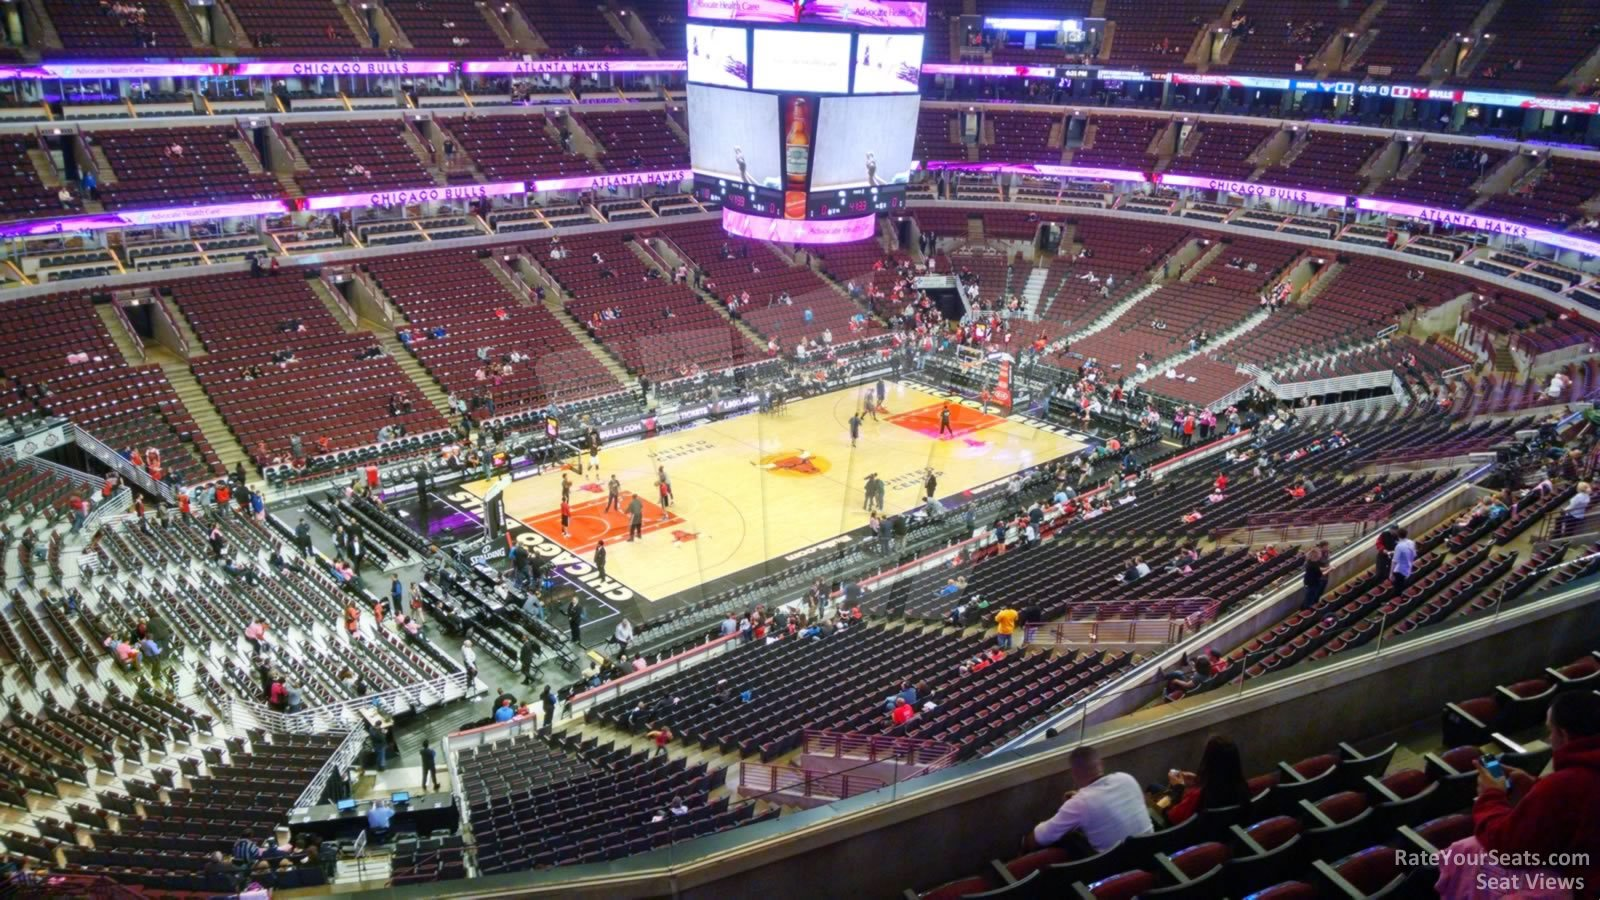 United Center Section 321 - Chicago Bulls - RateYourSeats.com